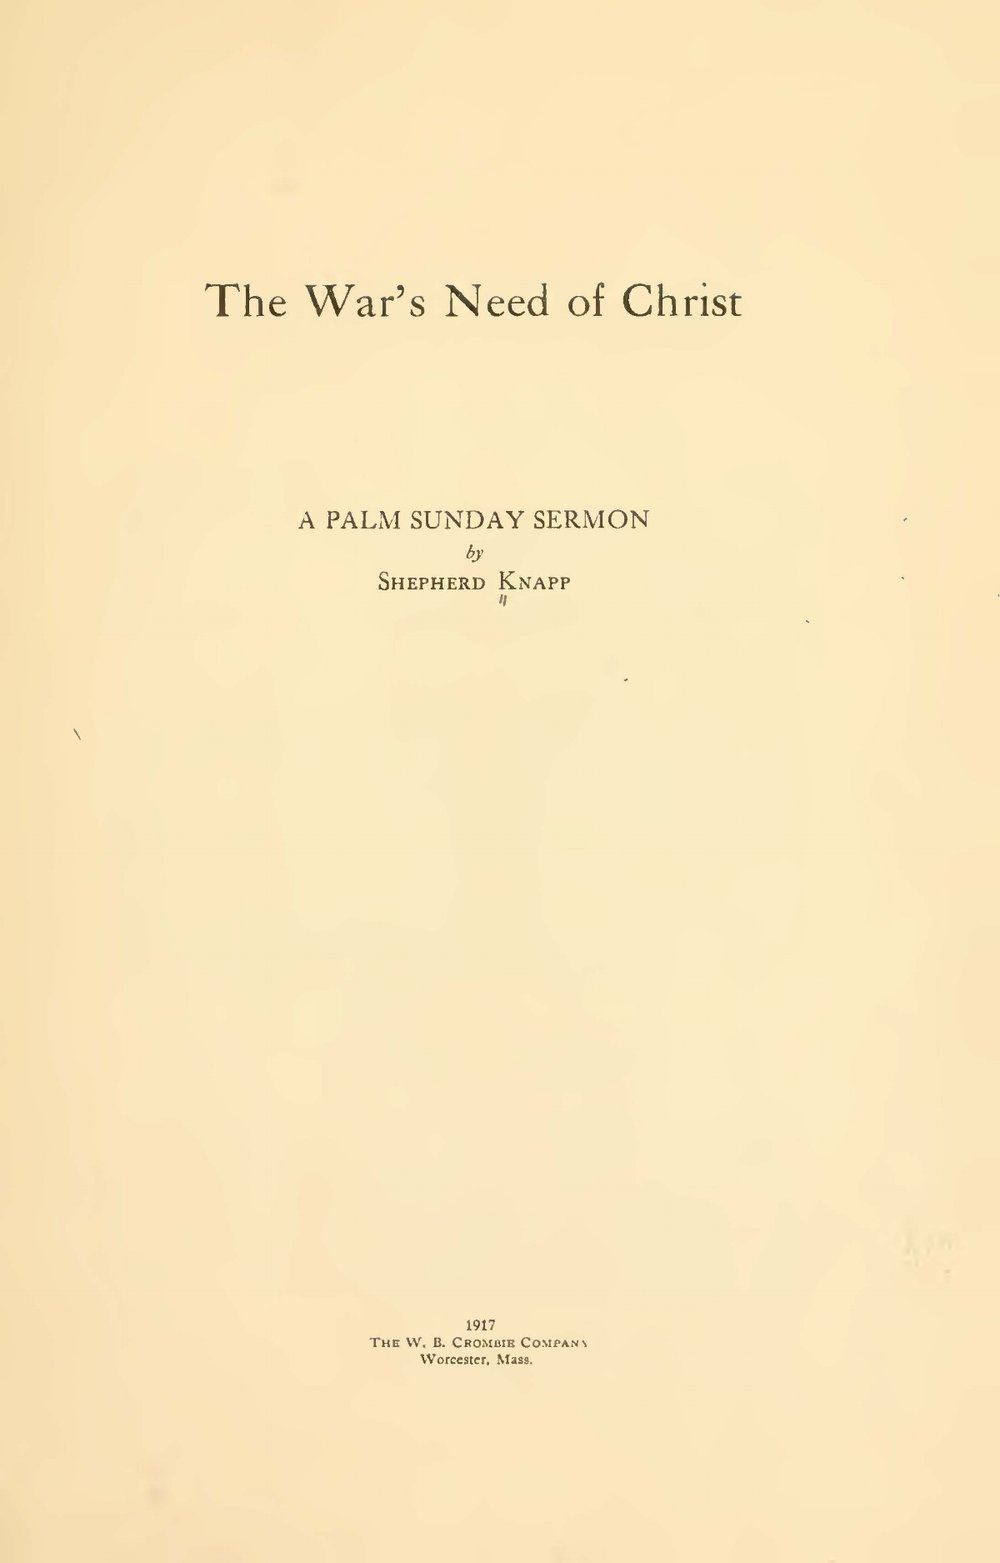 Knapp, Jr., Shepherd, The War's Need of Christ Title Page.jpg